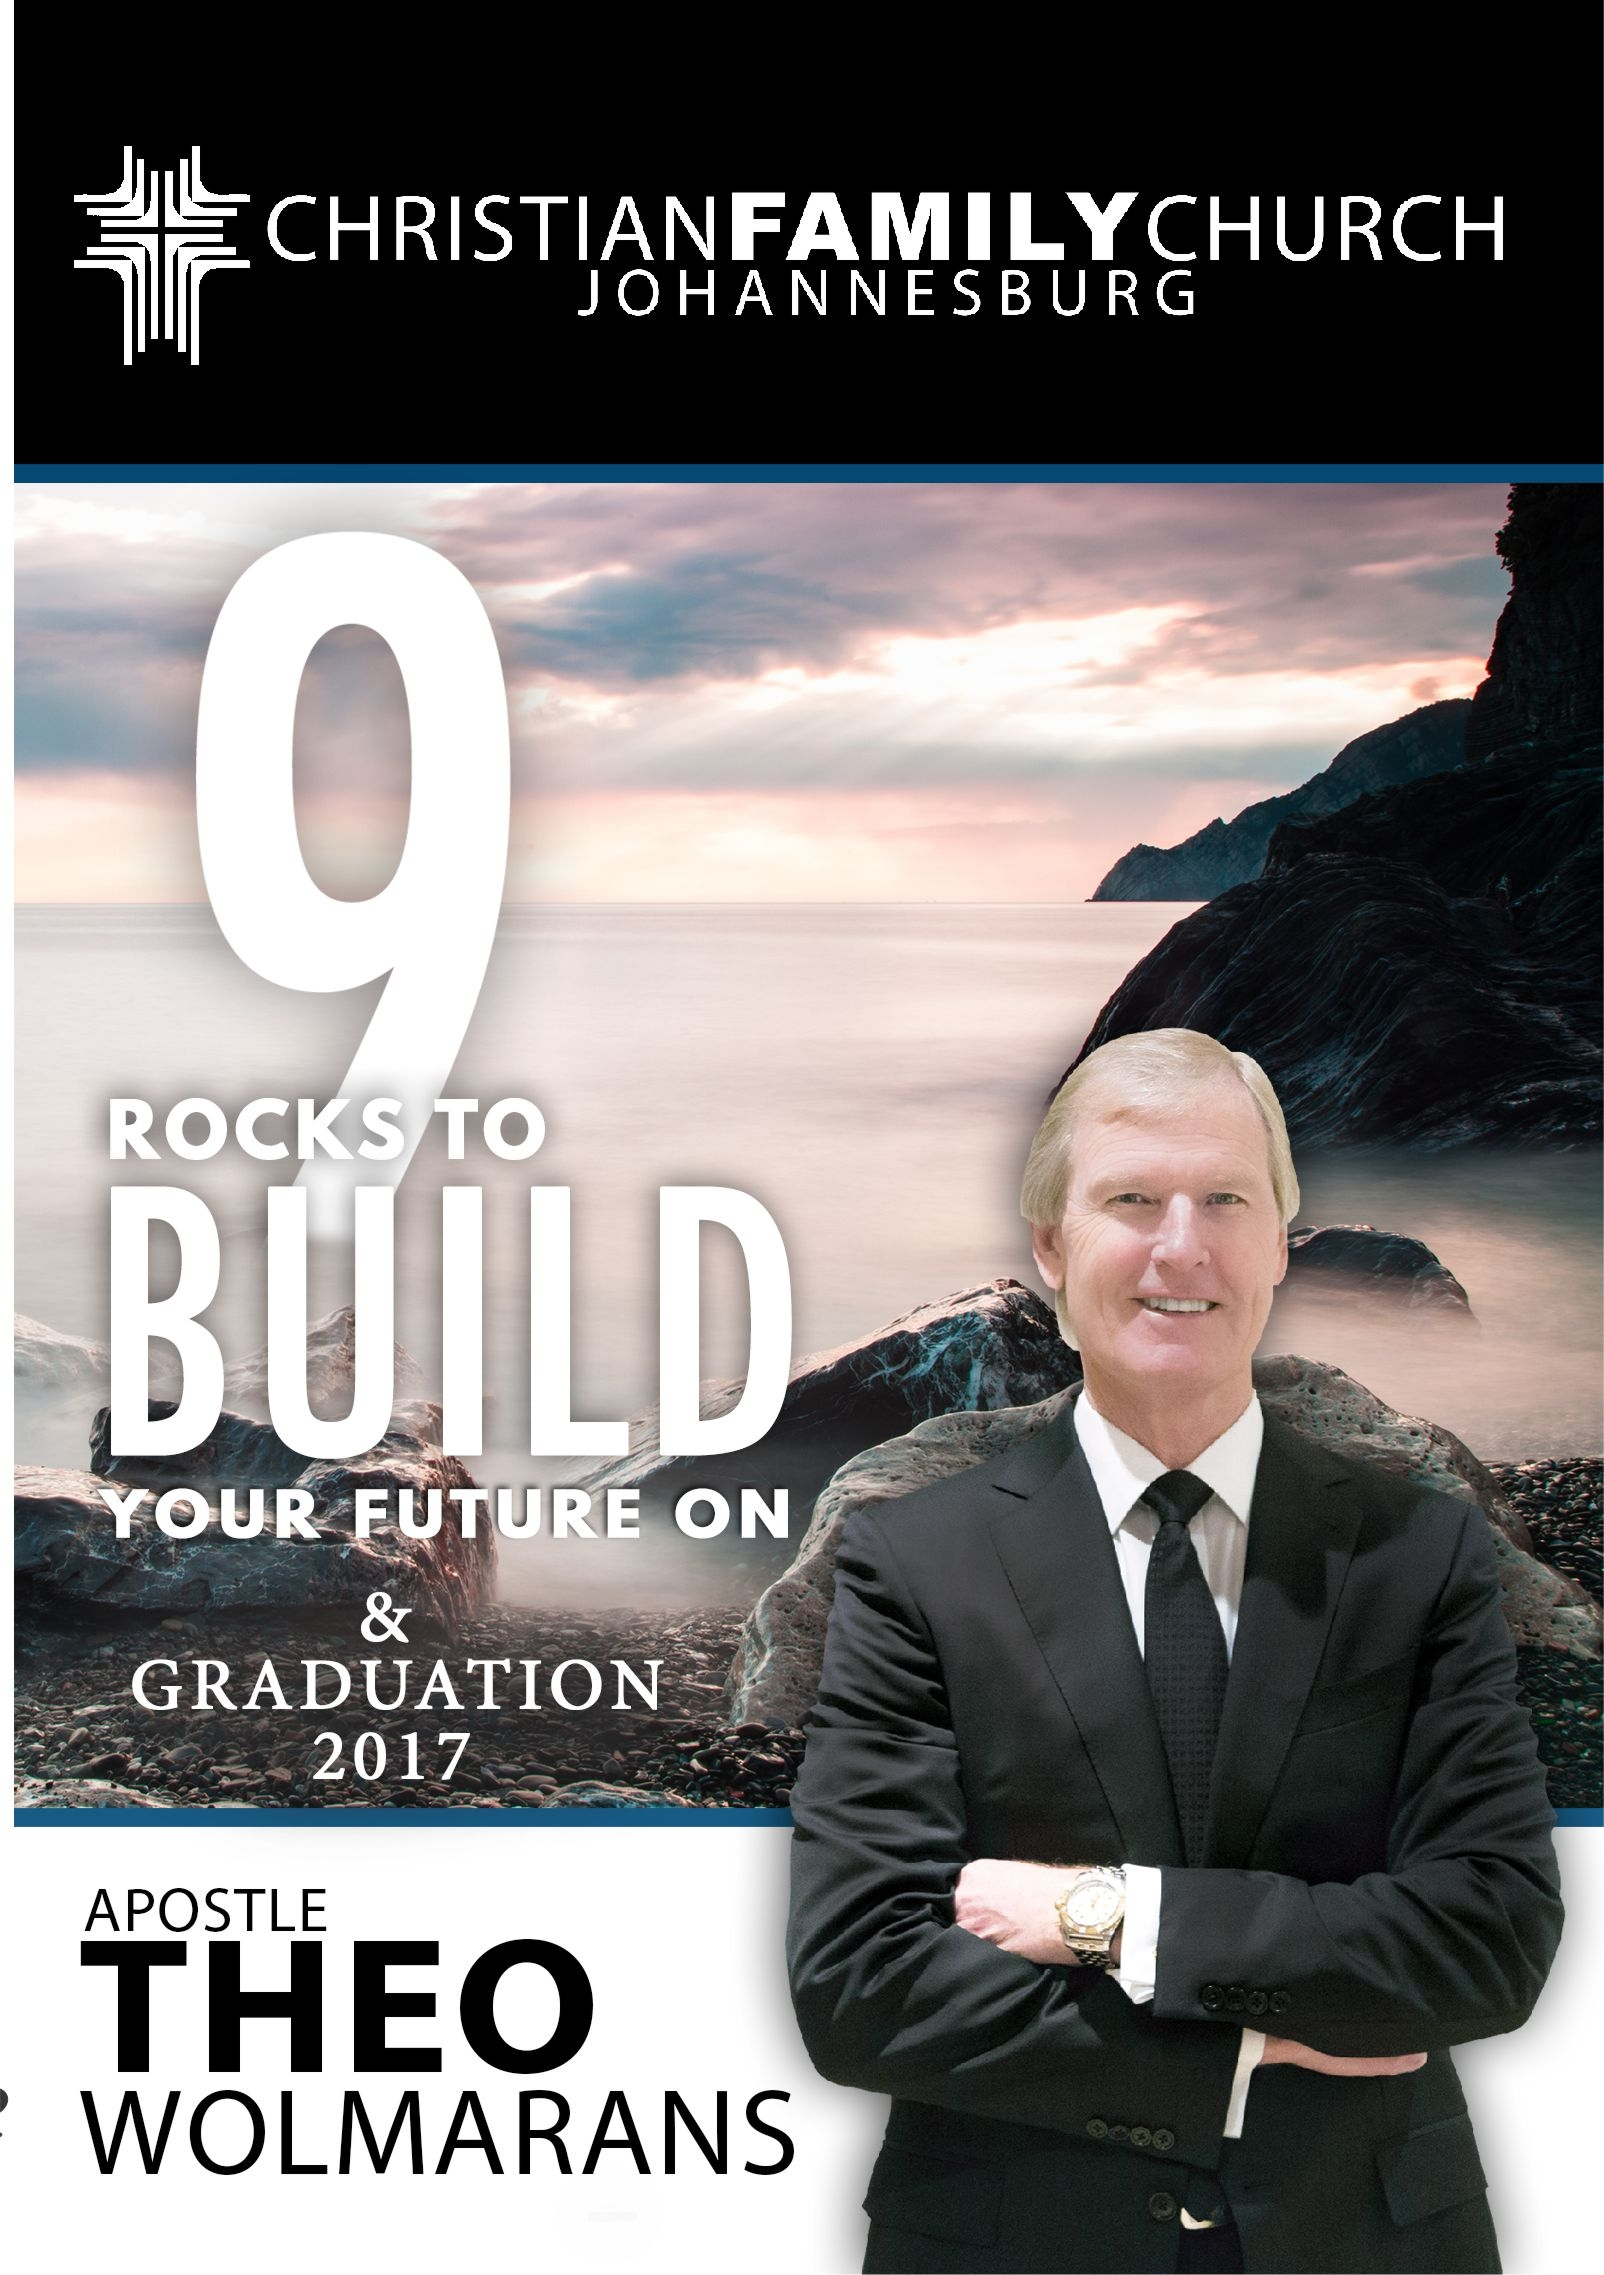 DR-THEO-WOLMARANS-9-ROCKS-TO-BUILD-YOUR-FUTURE-ON-MP3